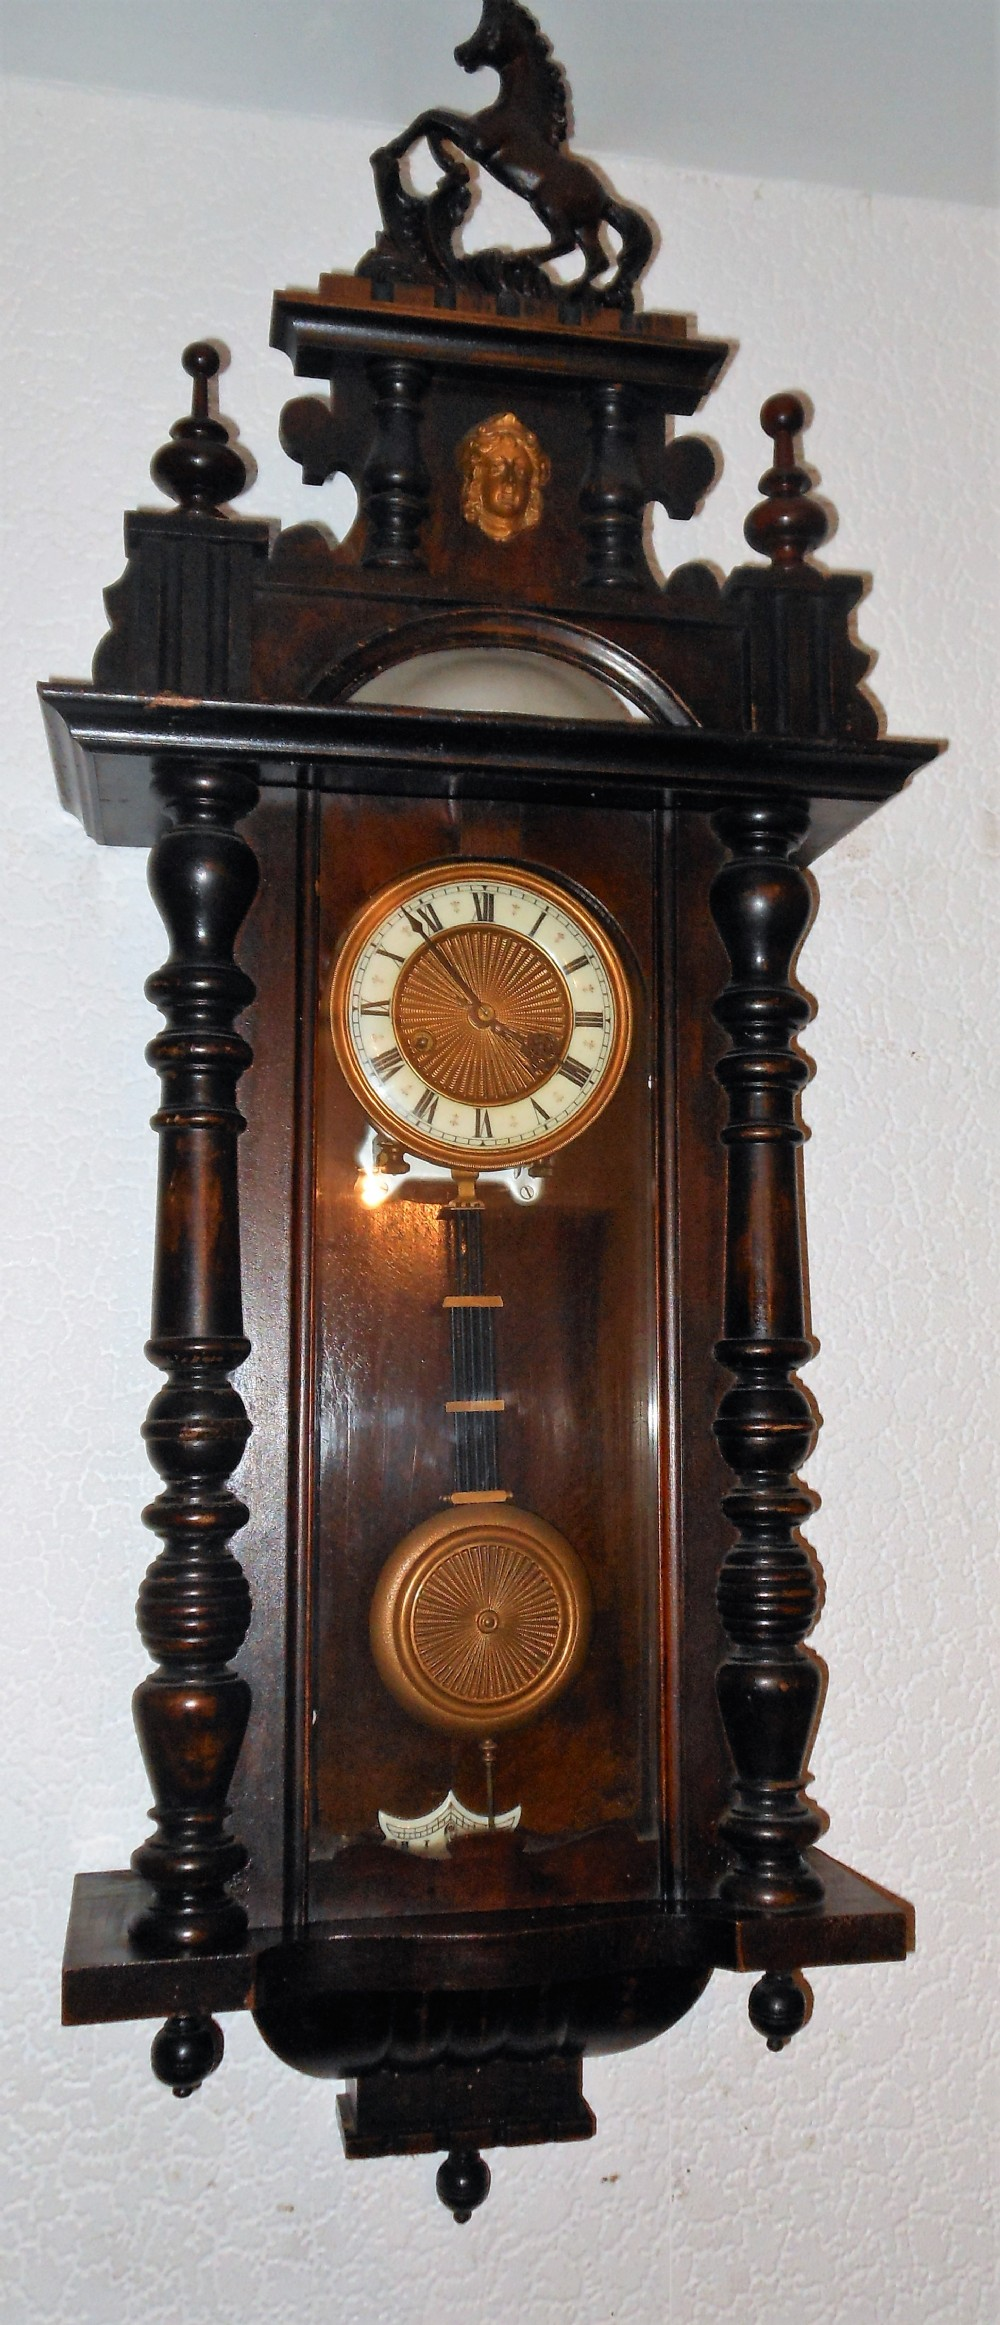 Intresting hac vienna wall clock with bell strike c1900s 510276 intresting hac vienna wall clock with bell strike c1900s amipublicfo Choice Image